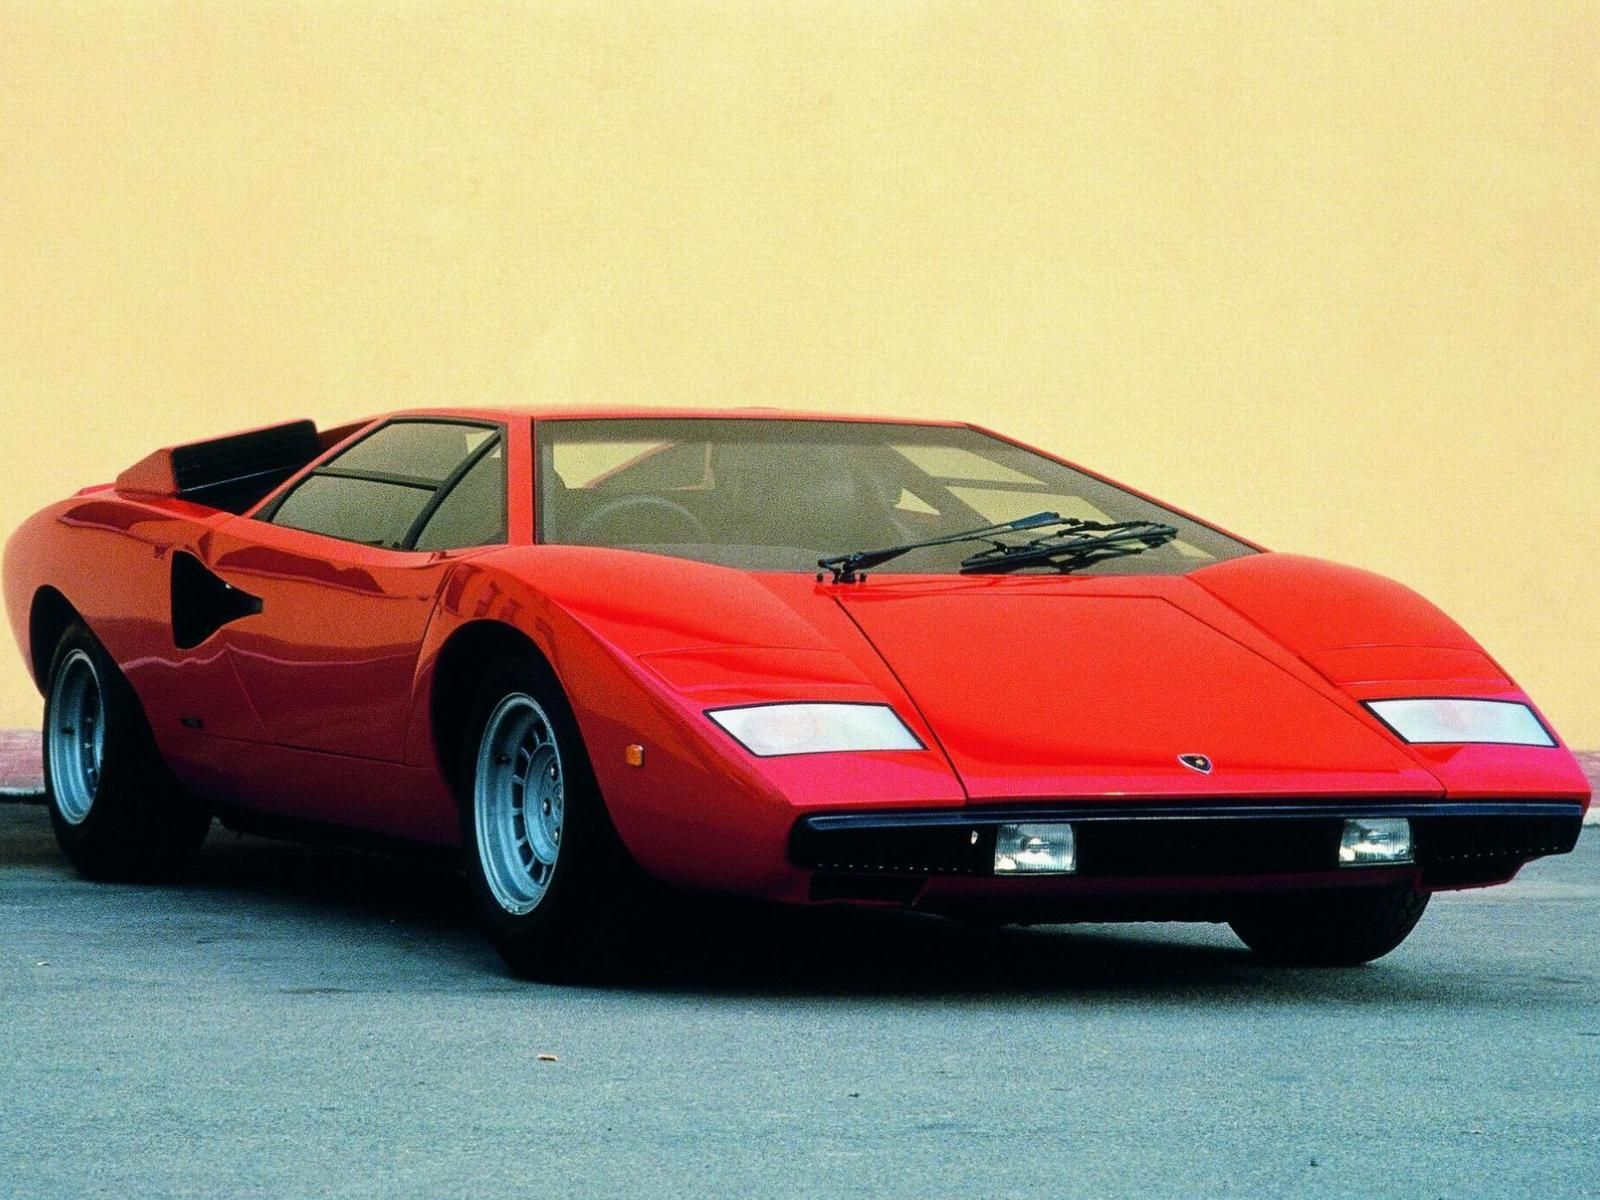 One of my all-time favorites: the Lamborghini Countach